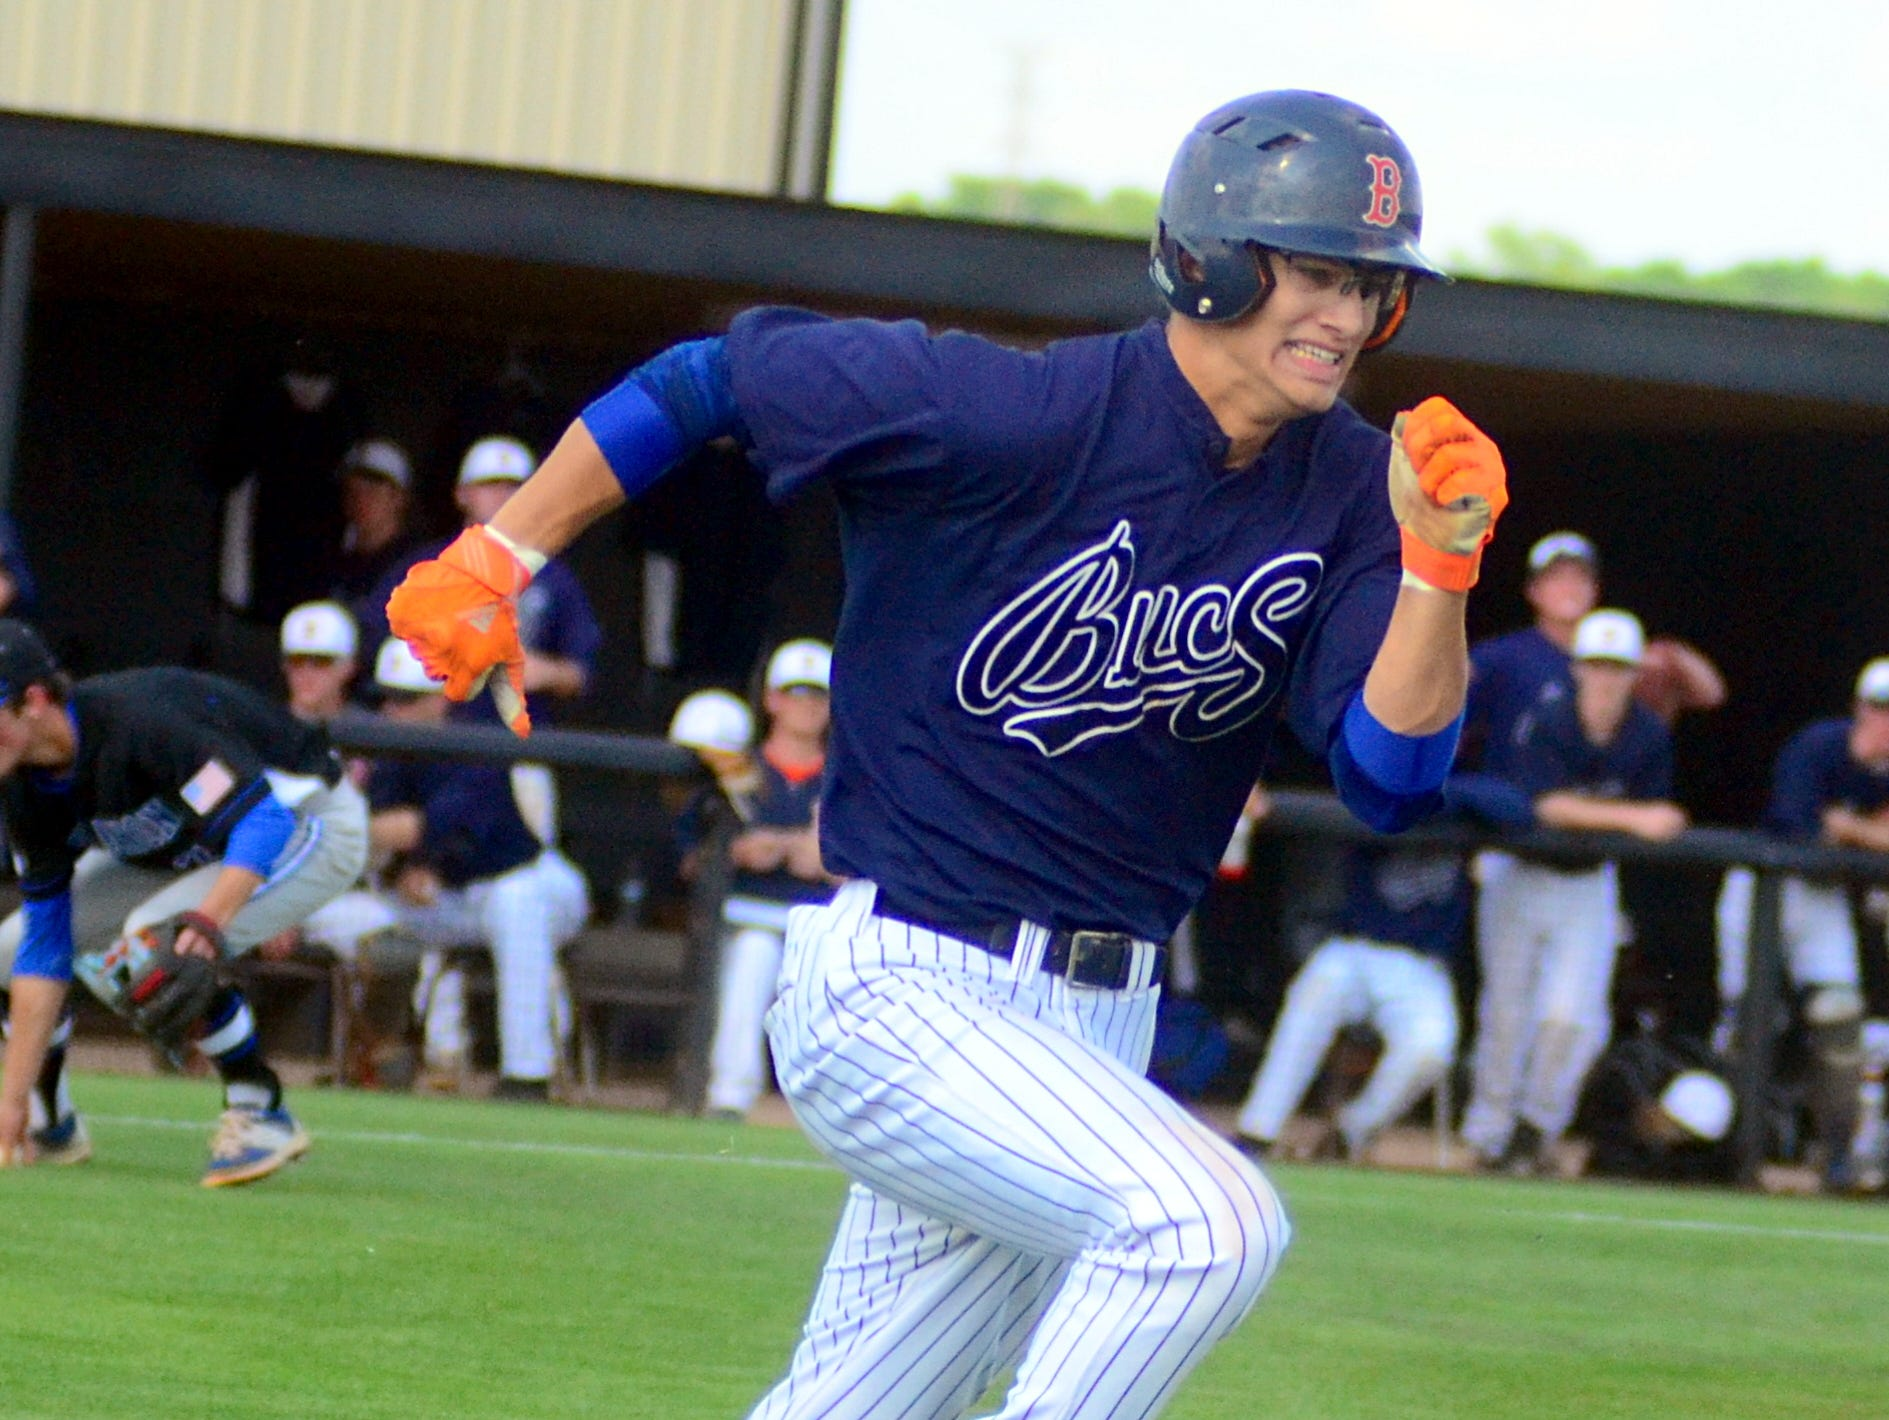 Beech High senior Jacob Jenkins runs down the first-base line during second-inning action. Jenkins singled in the second inning.